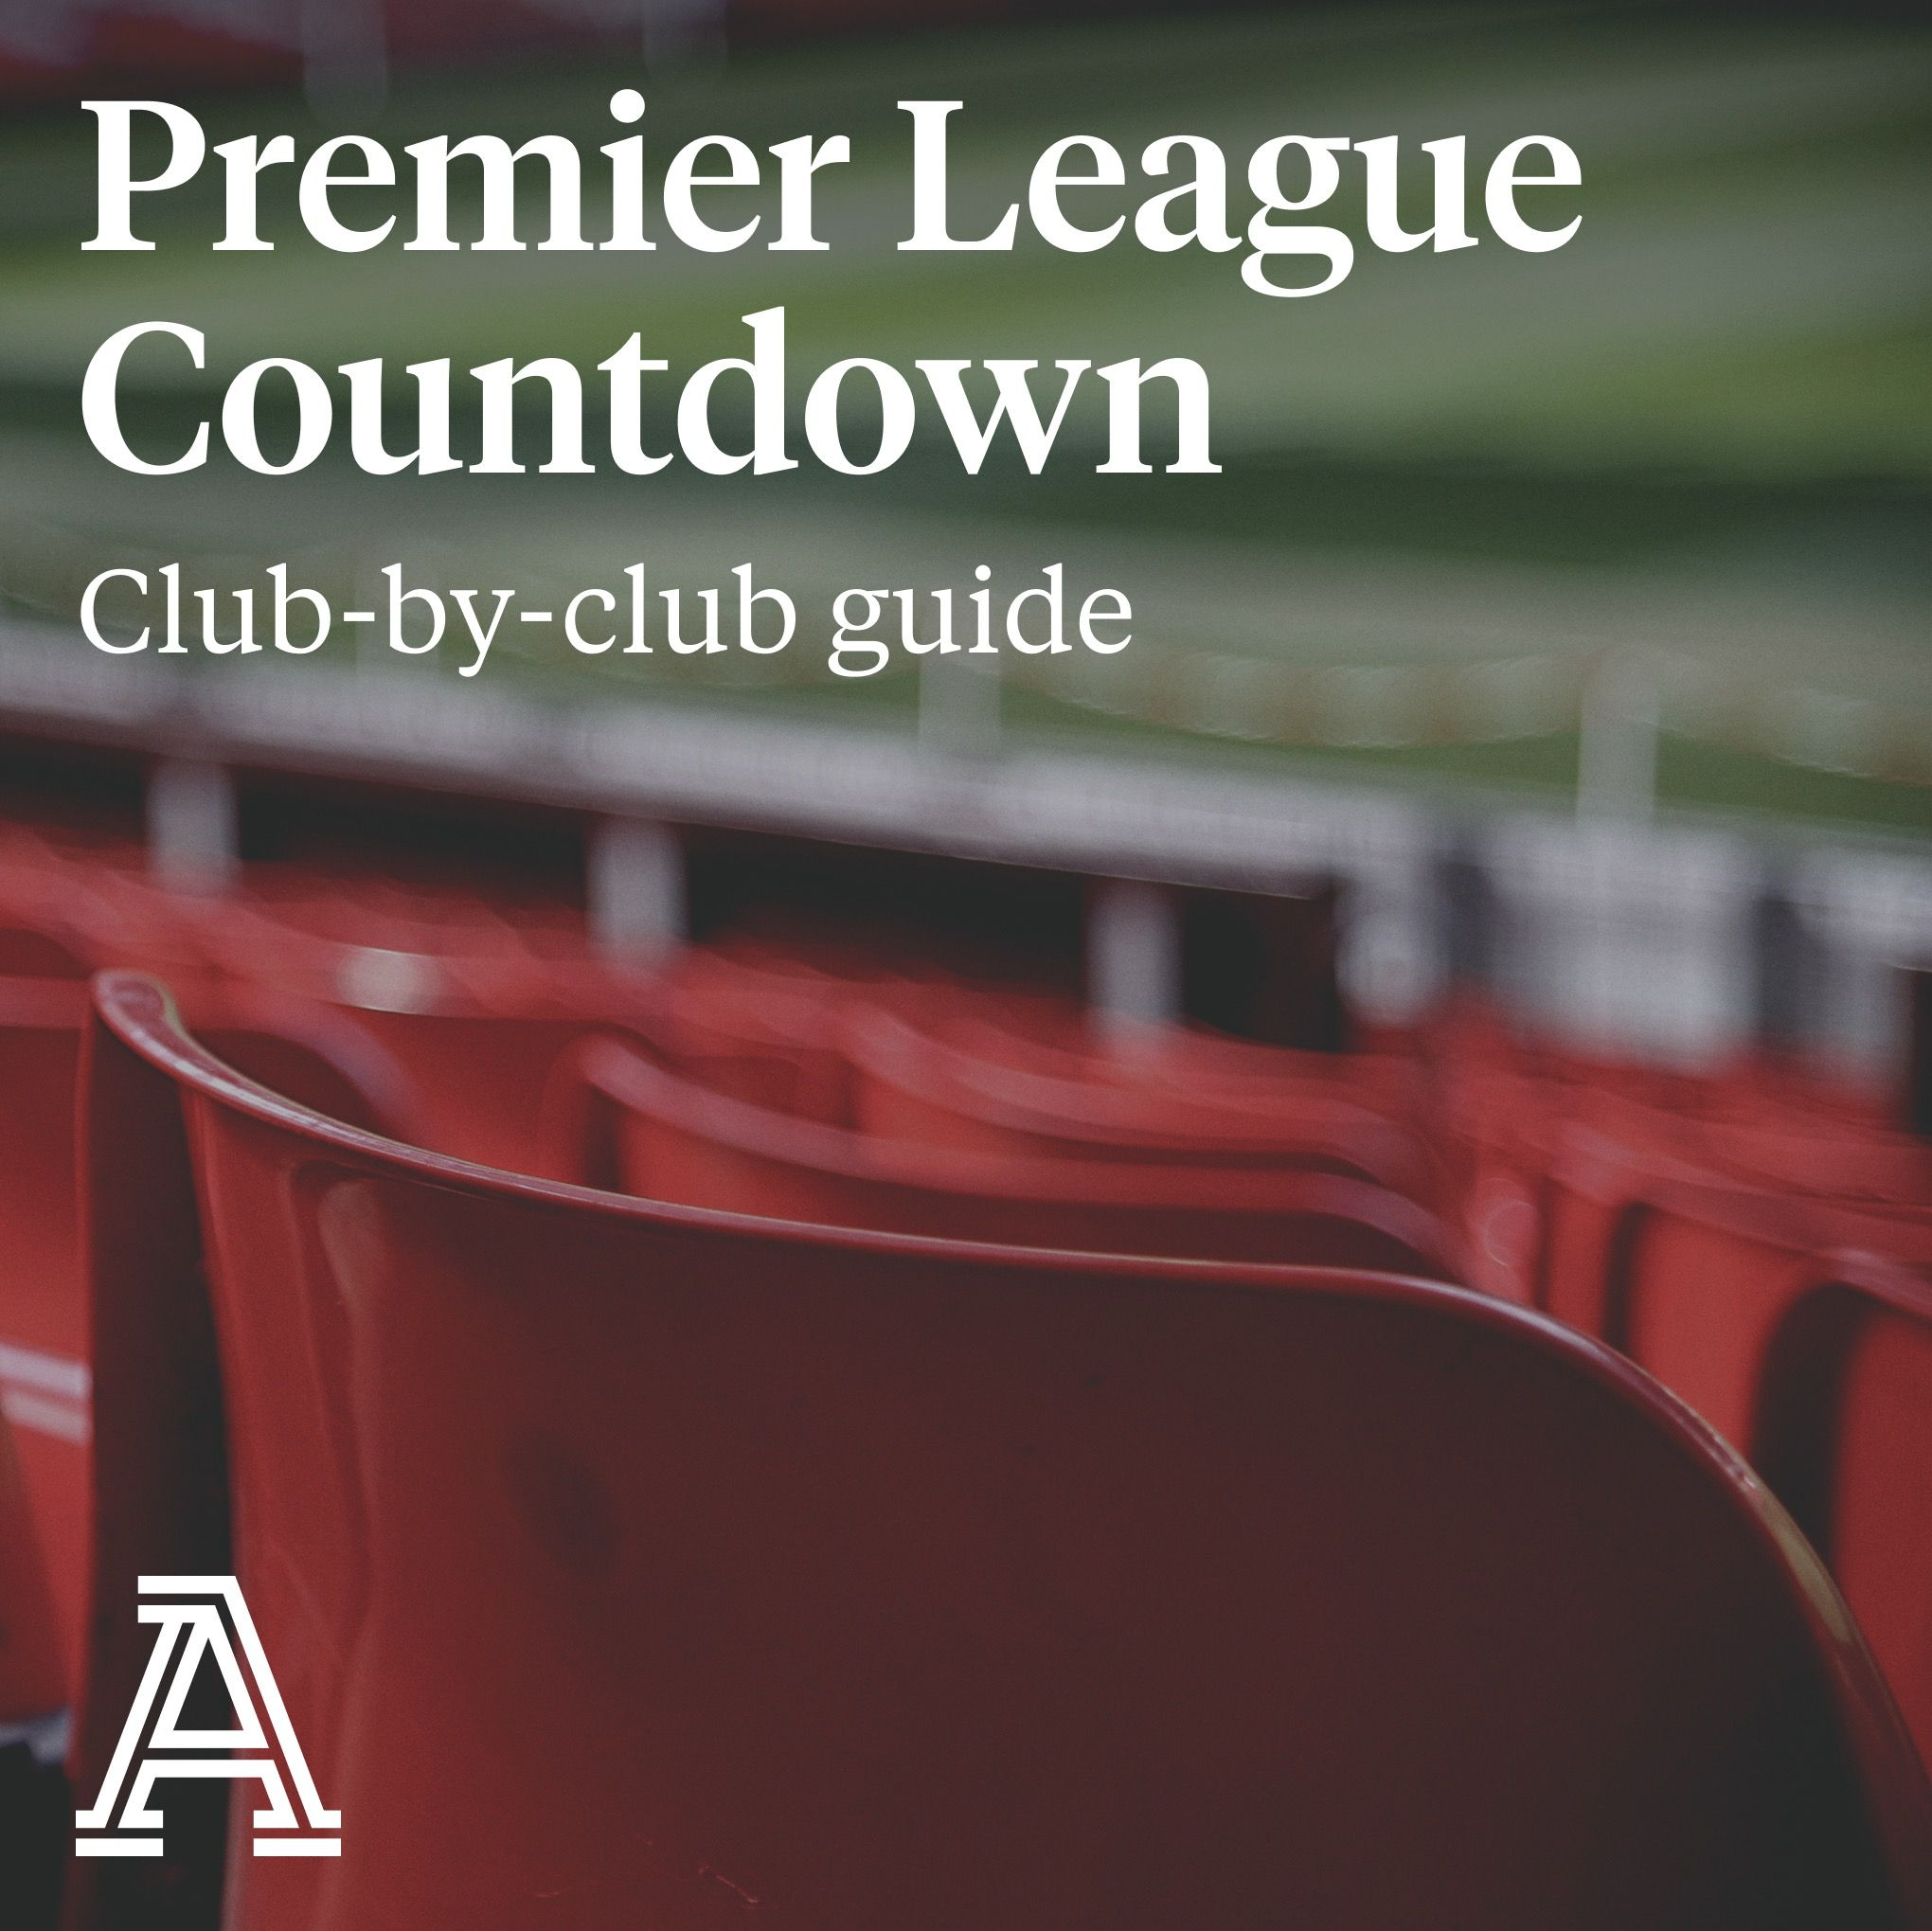 Premier League Countdown - West Ham United